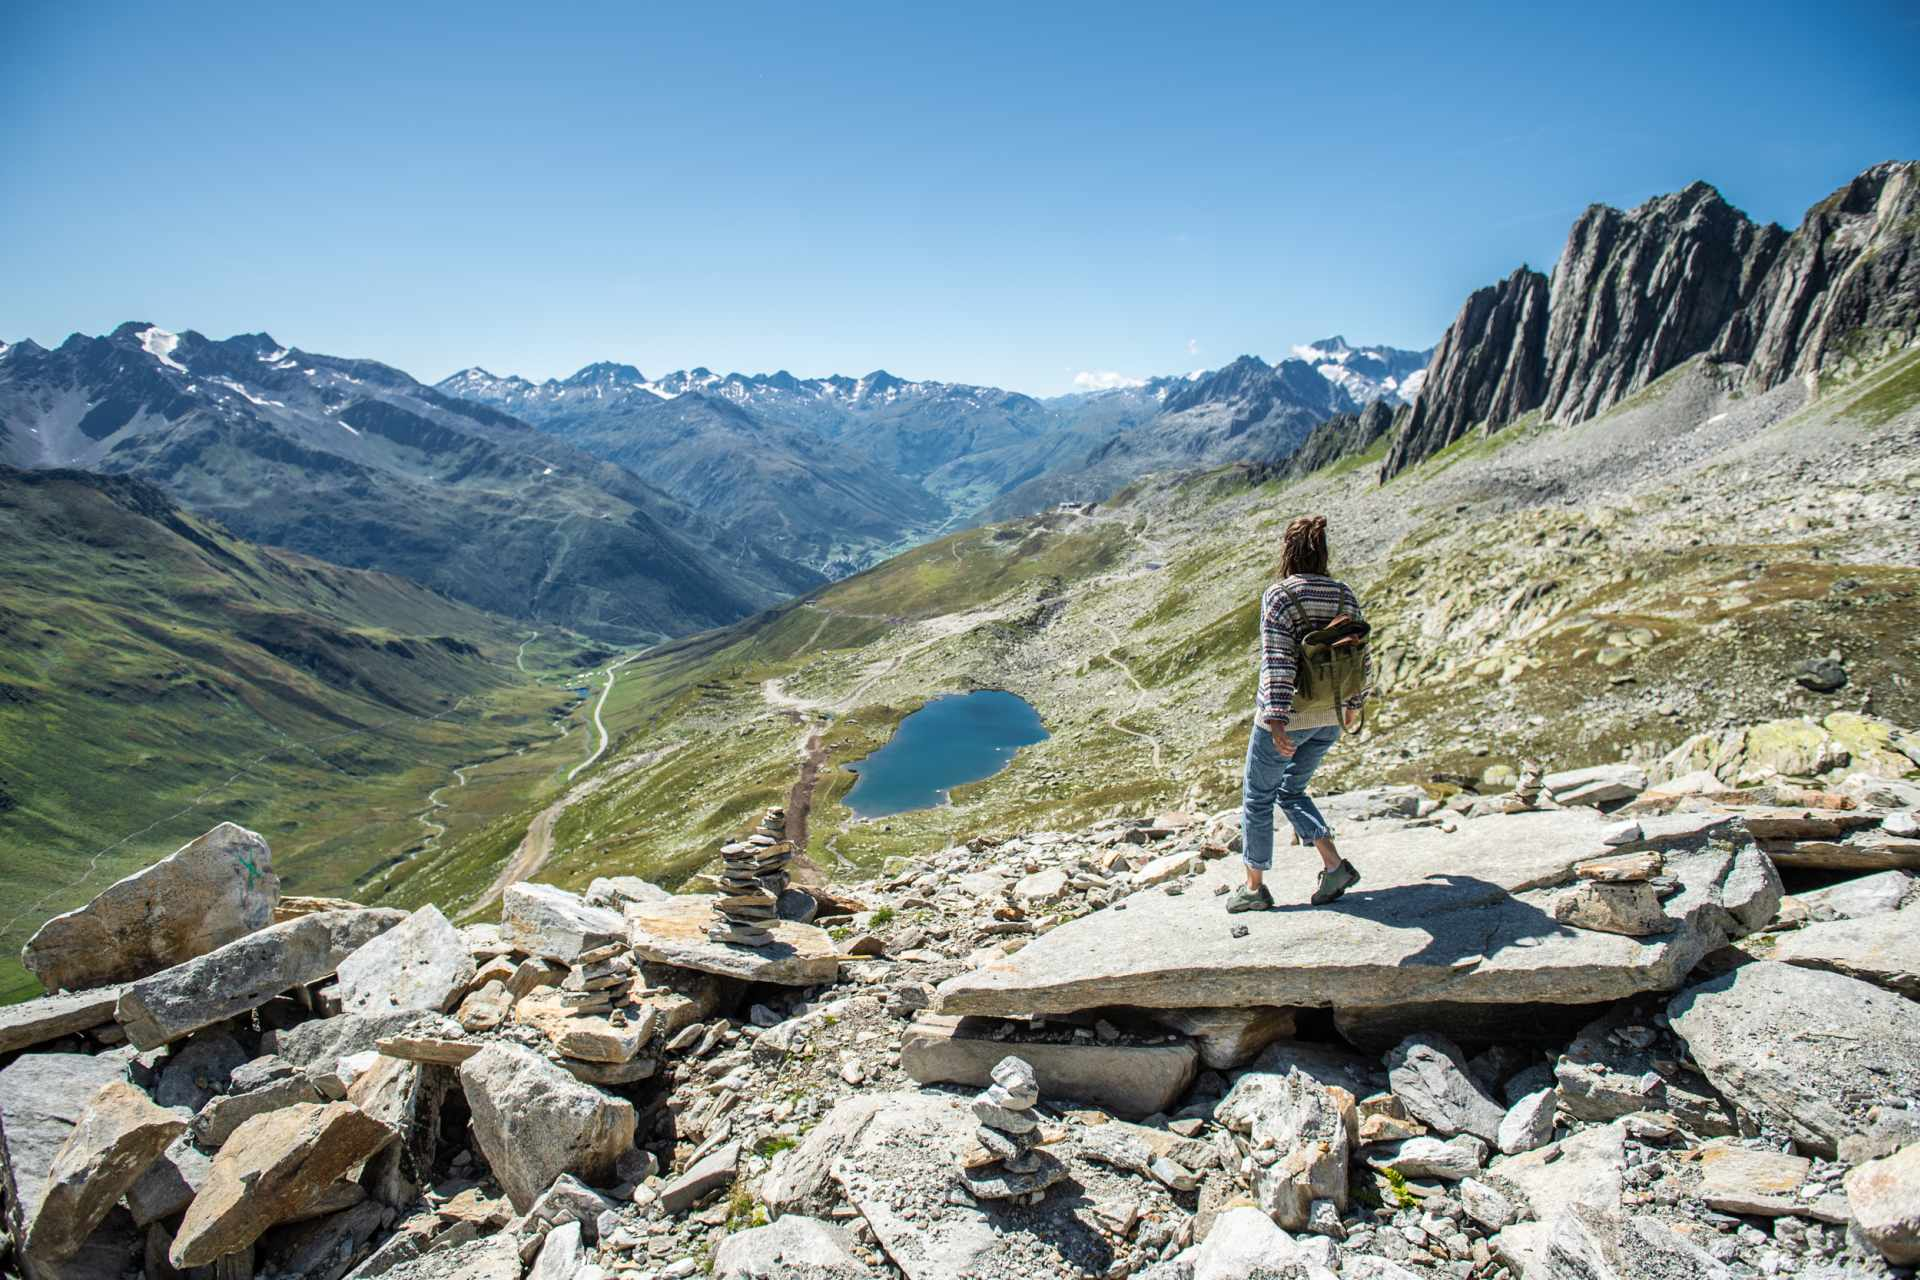 Hiker on a flat rock looking out at Lutersee in the background and view into the Urseren Valley